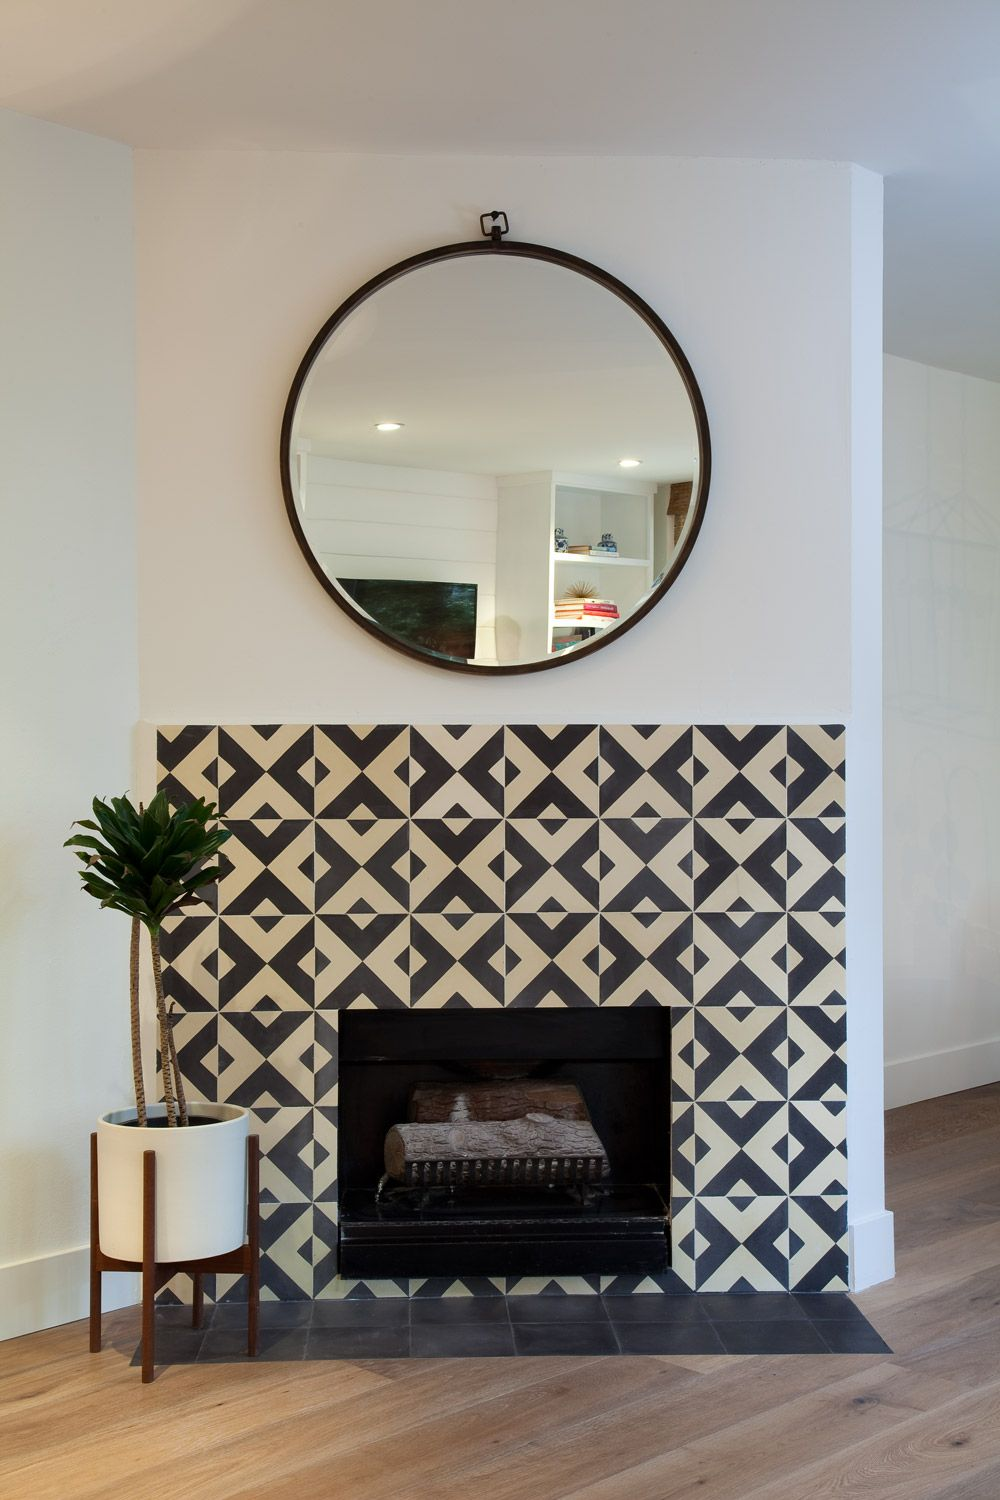 Granada Tile S Serengeti Cement Tiles Update A Fireplace On Design Milk In 2020 Fireplace Surrounds Condo Remodel Living Room Remodel